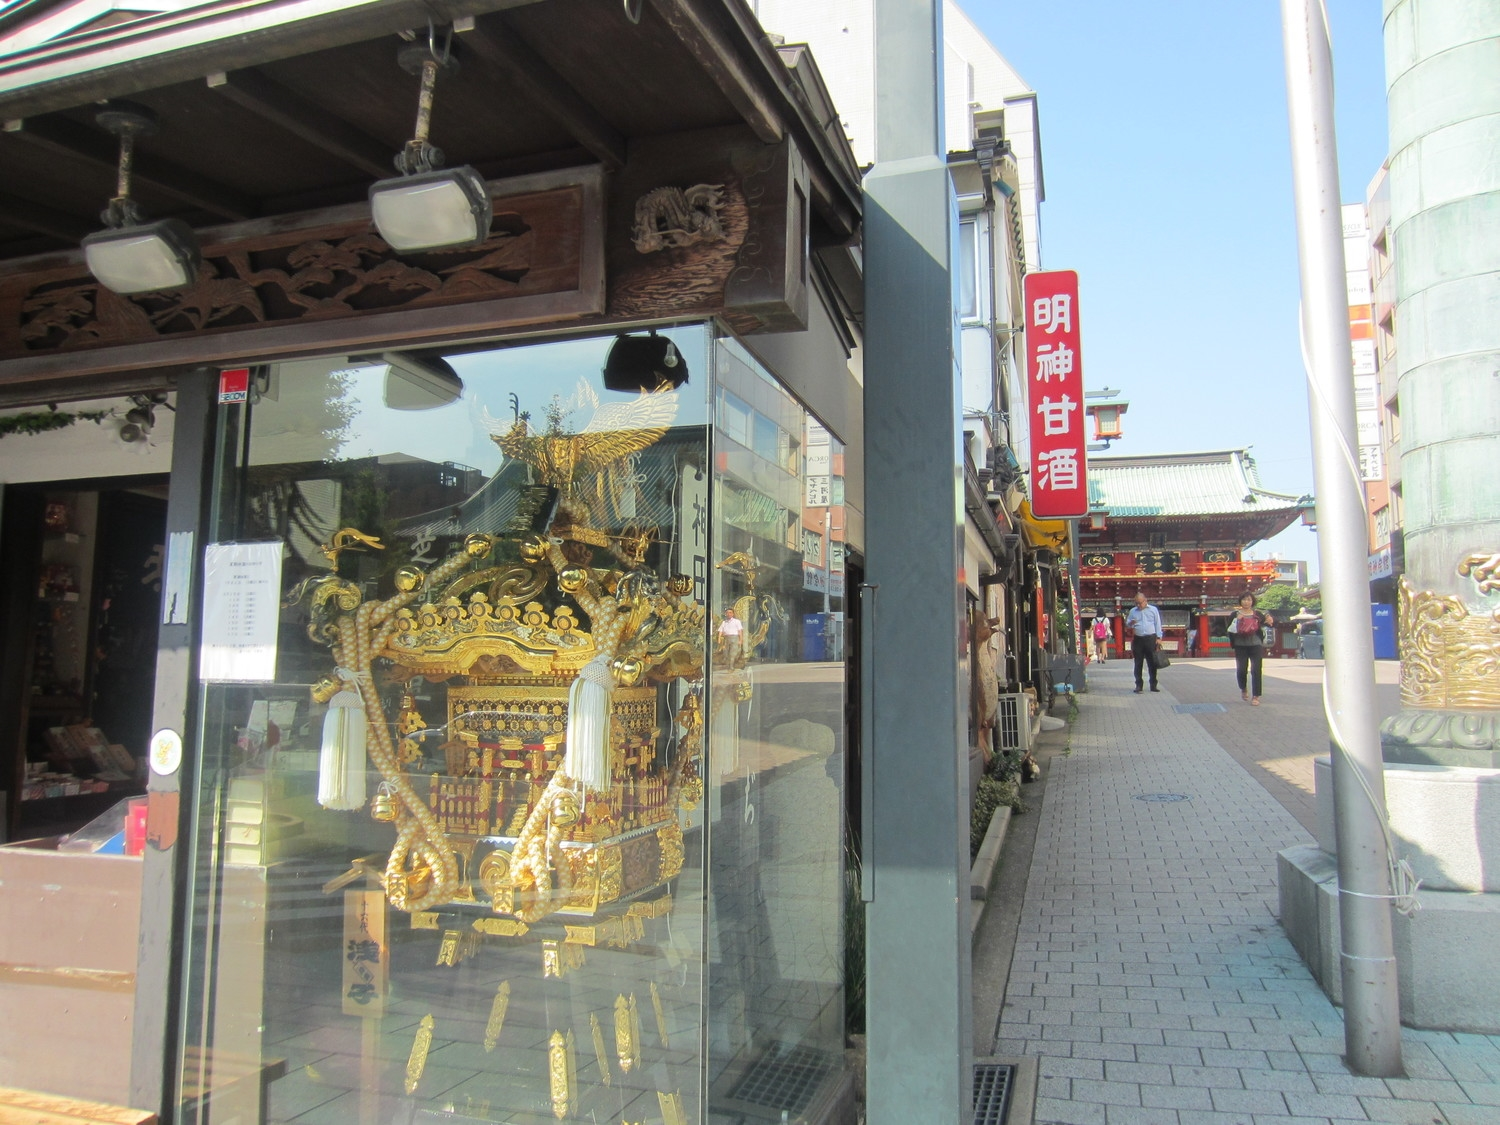 Amanoya is located down the street from the famous Kanda Myojin Shinto shrine in the busy Akibahara/Ochanomizu area of central Tokyo.